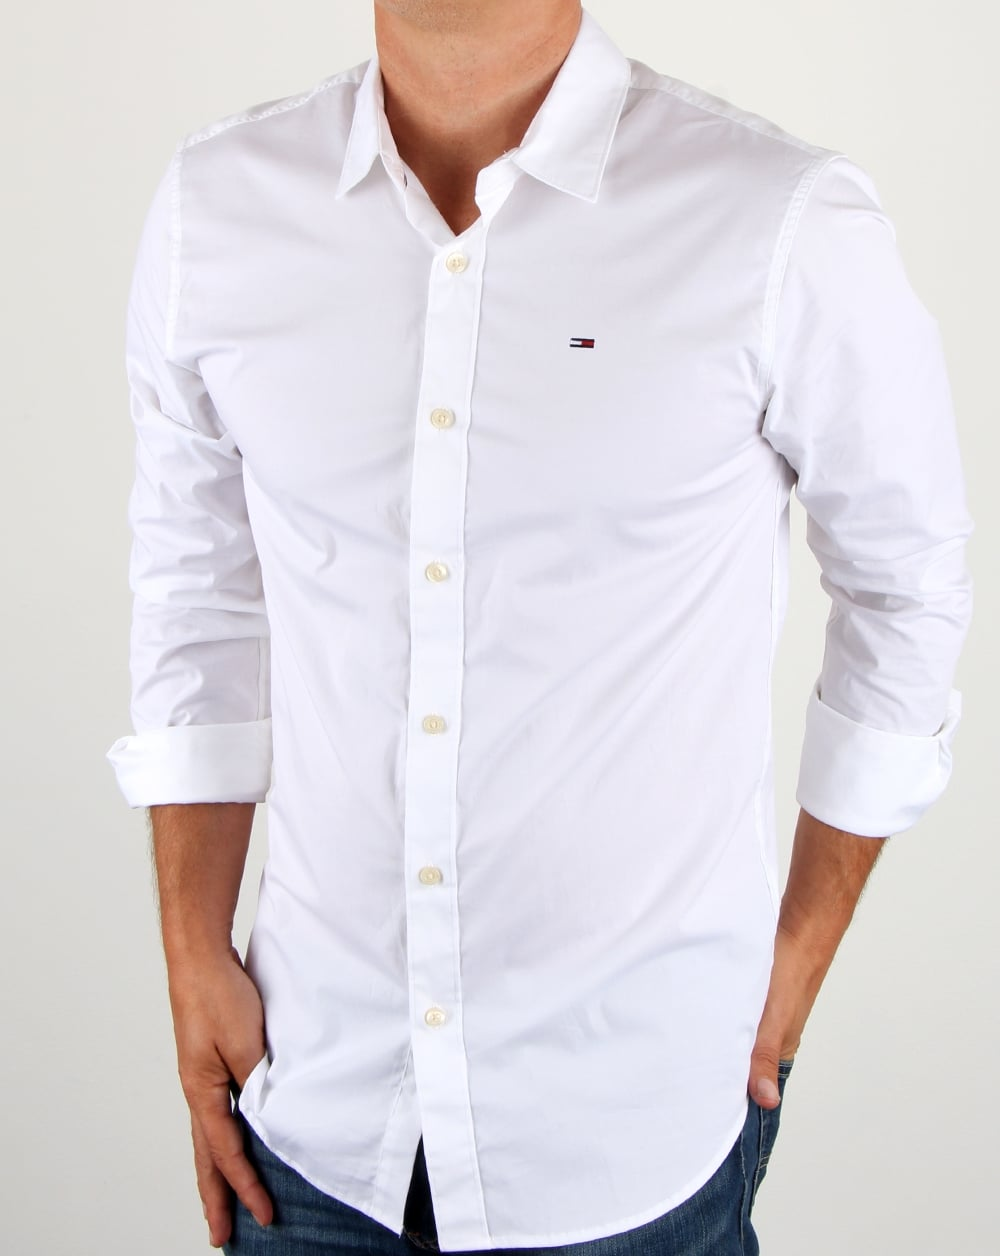 Tommy Hilfiger Jeans Tommy Hilfiger Cotton Stretch Shirt White 0bcf071e98812